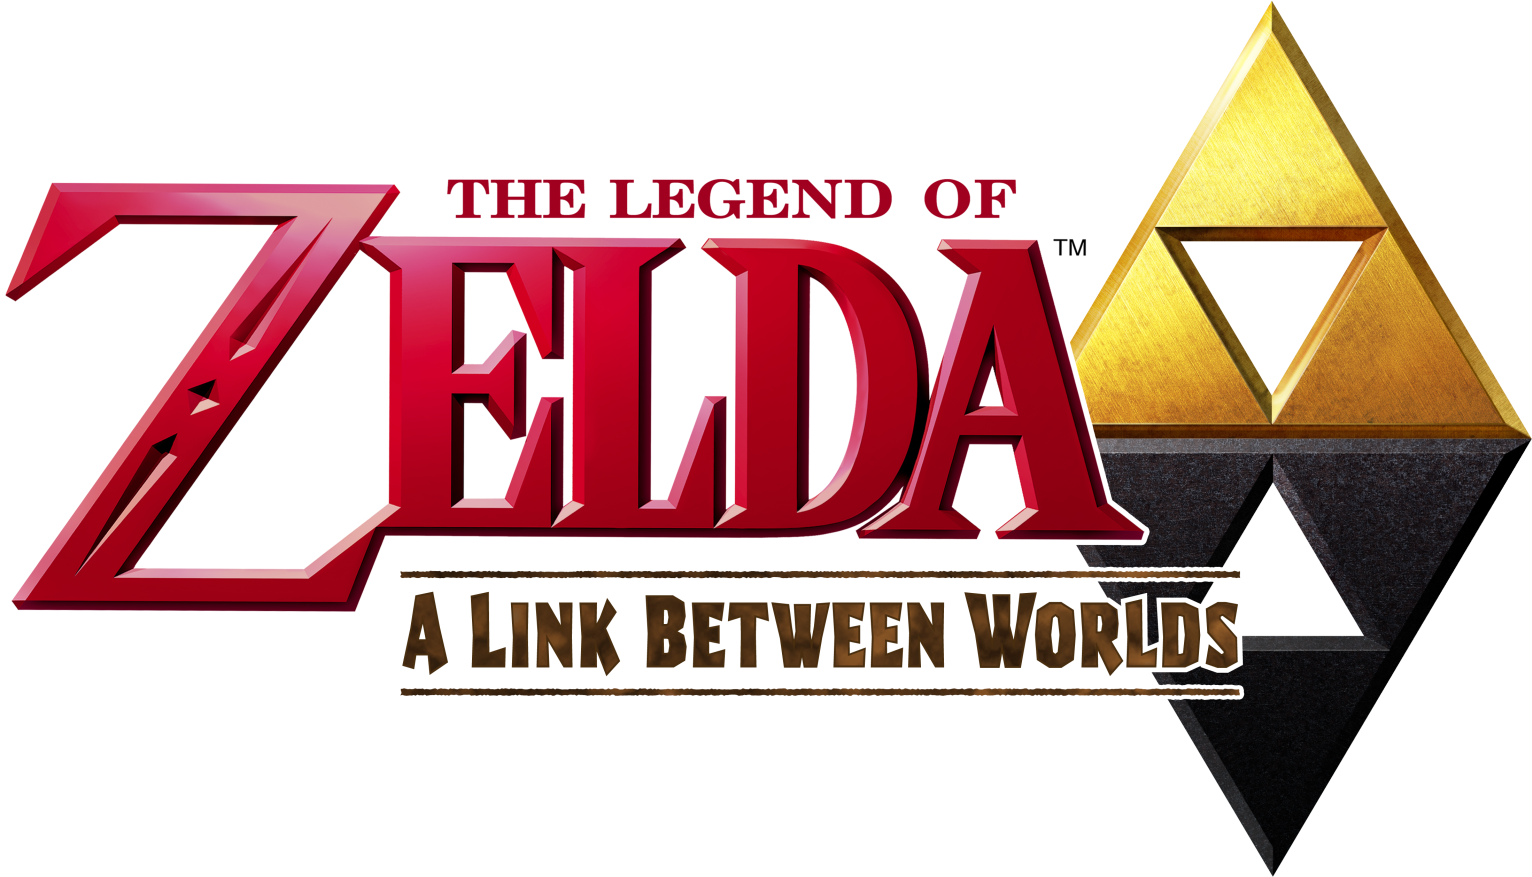 The Legend of Zelda - A Link Between Worlds (logo).png - The Legend Of Zelda PNG